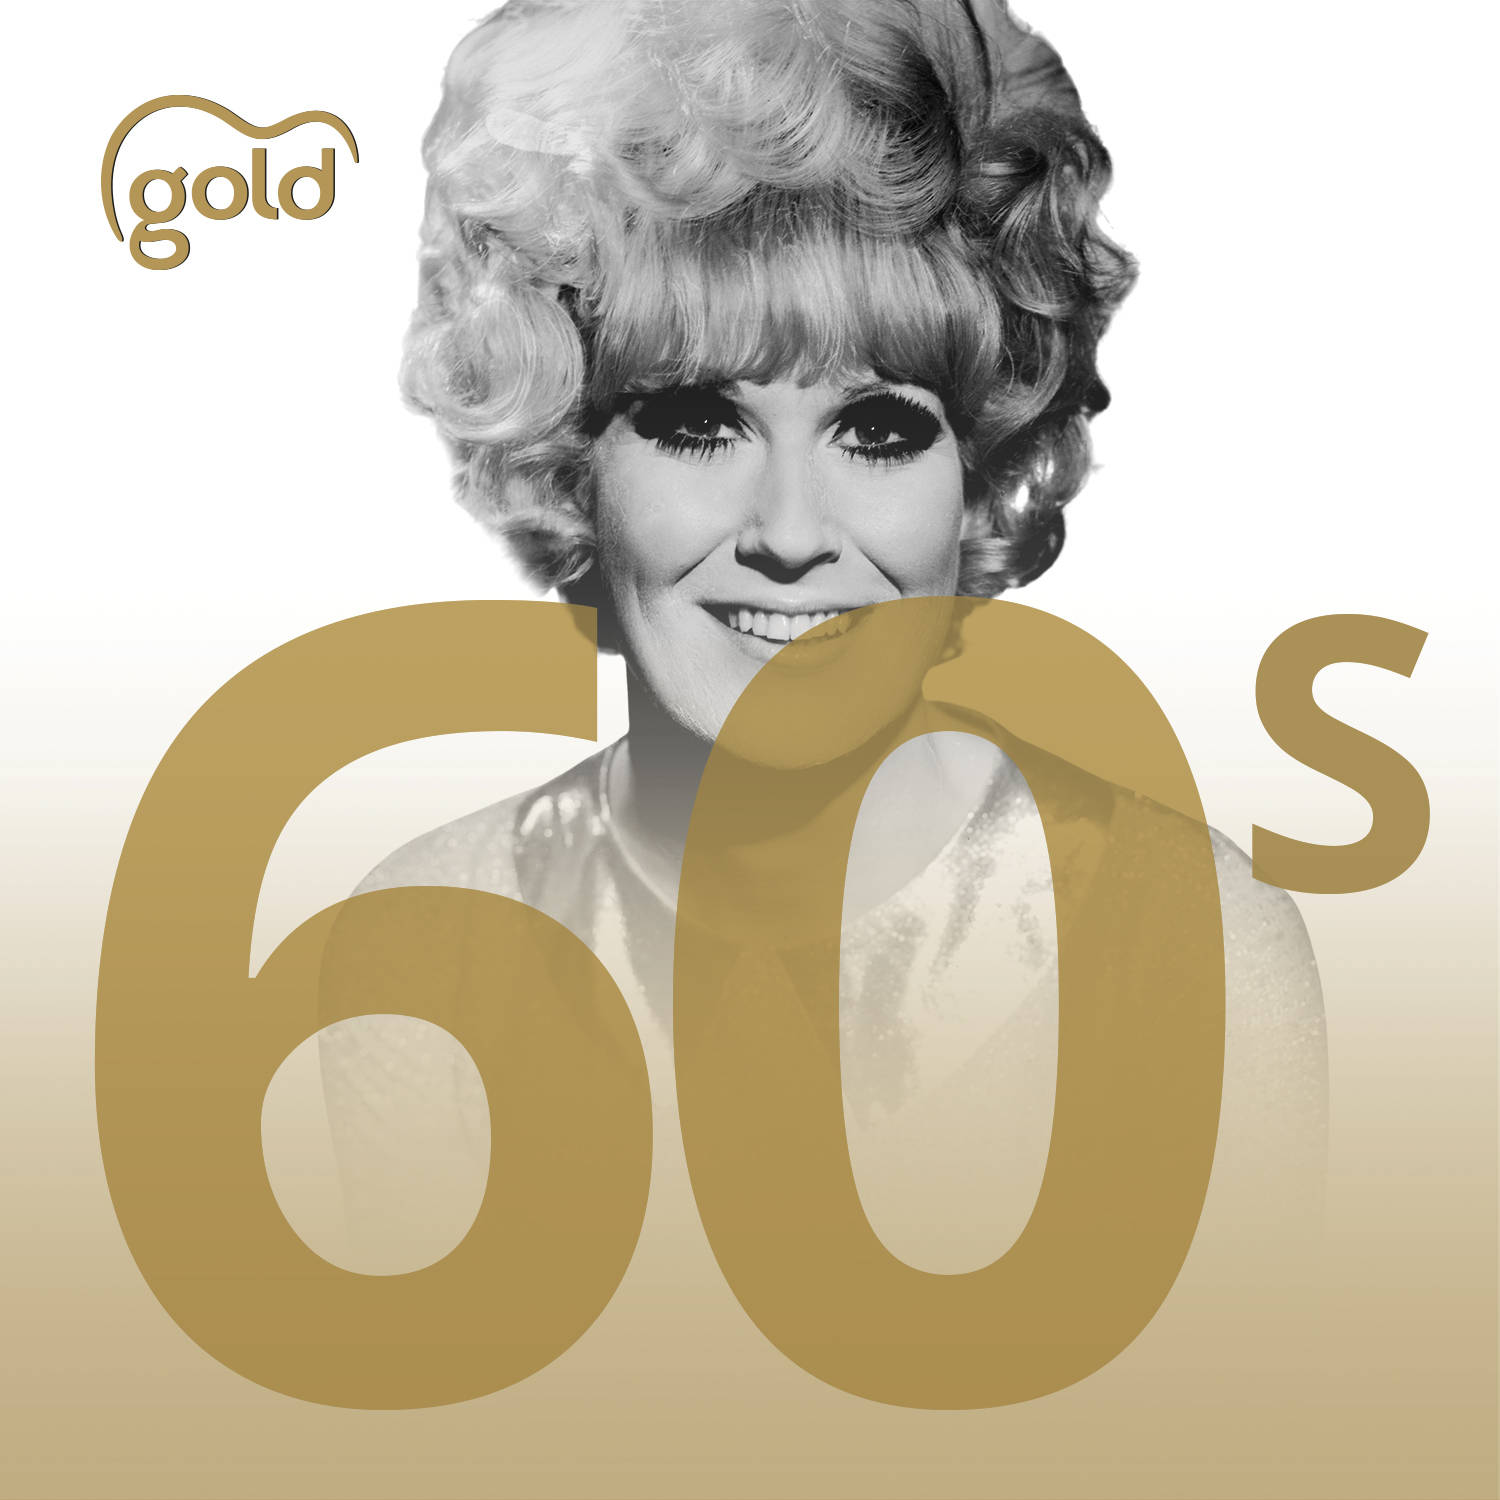 Gold 60s image